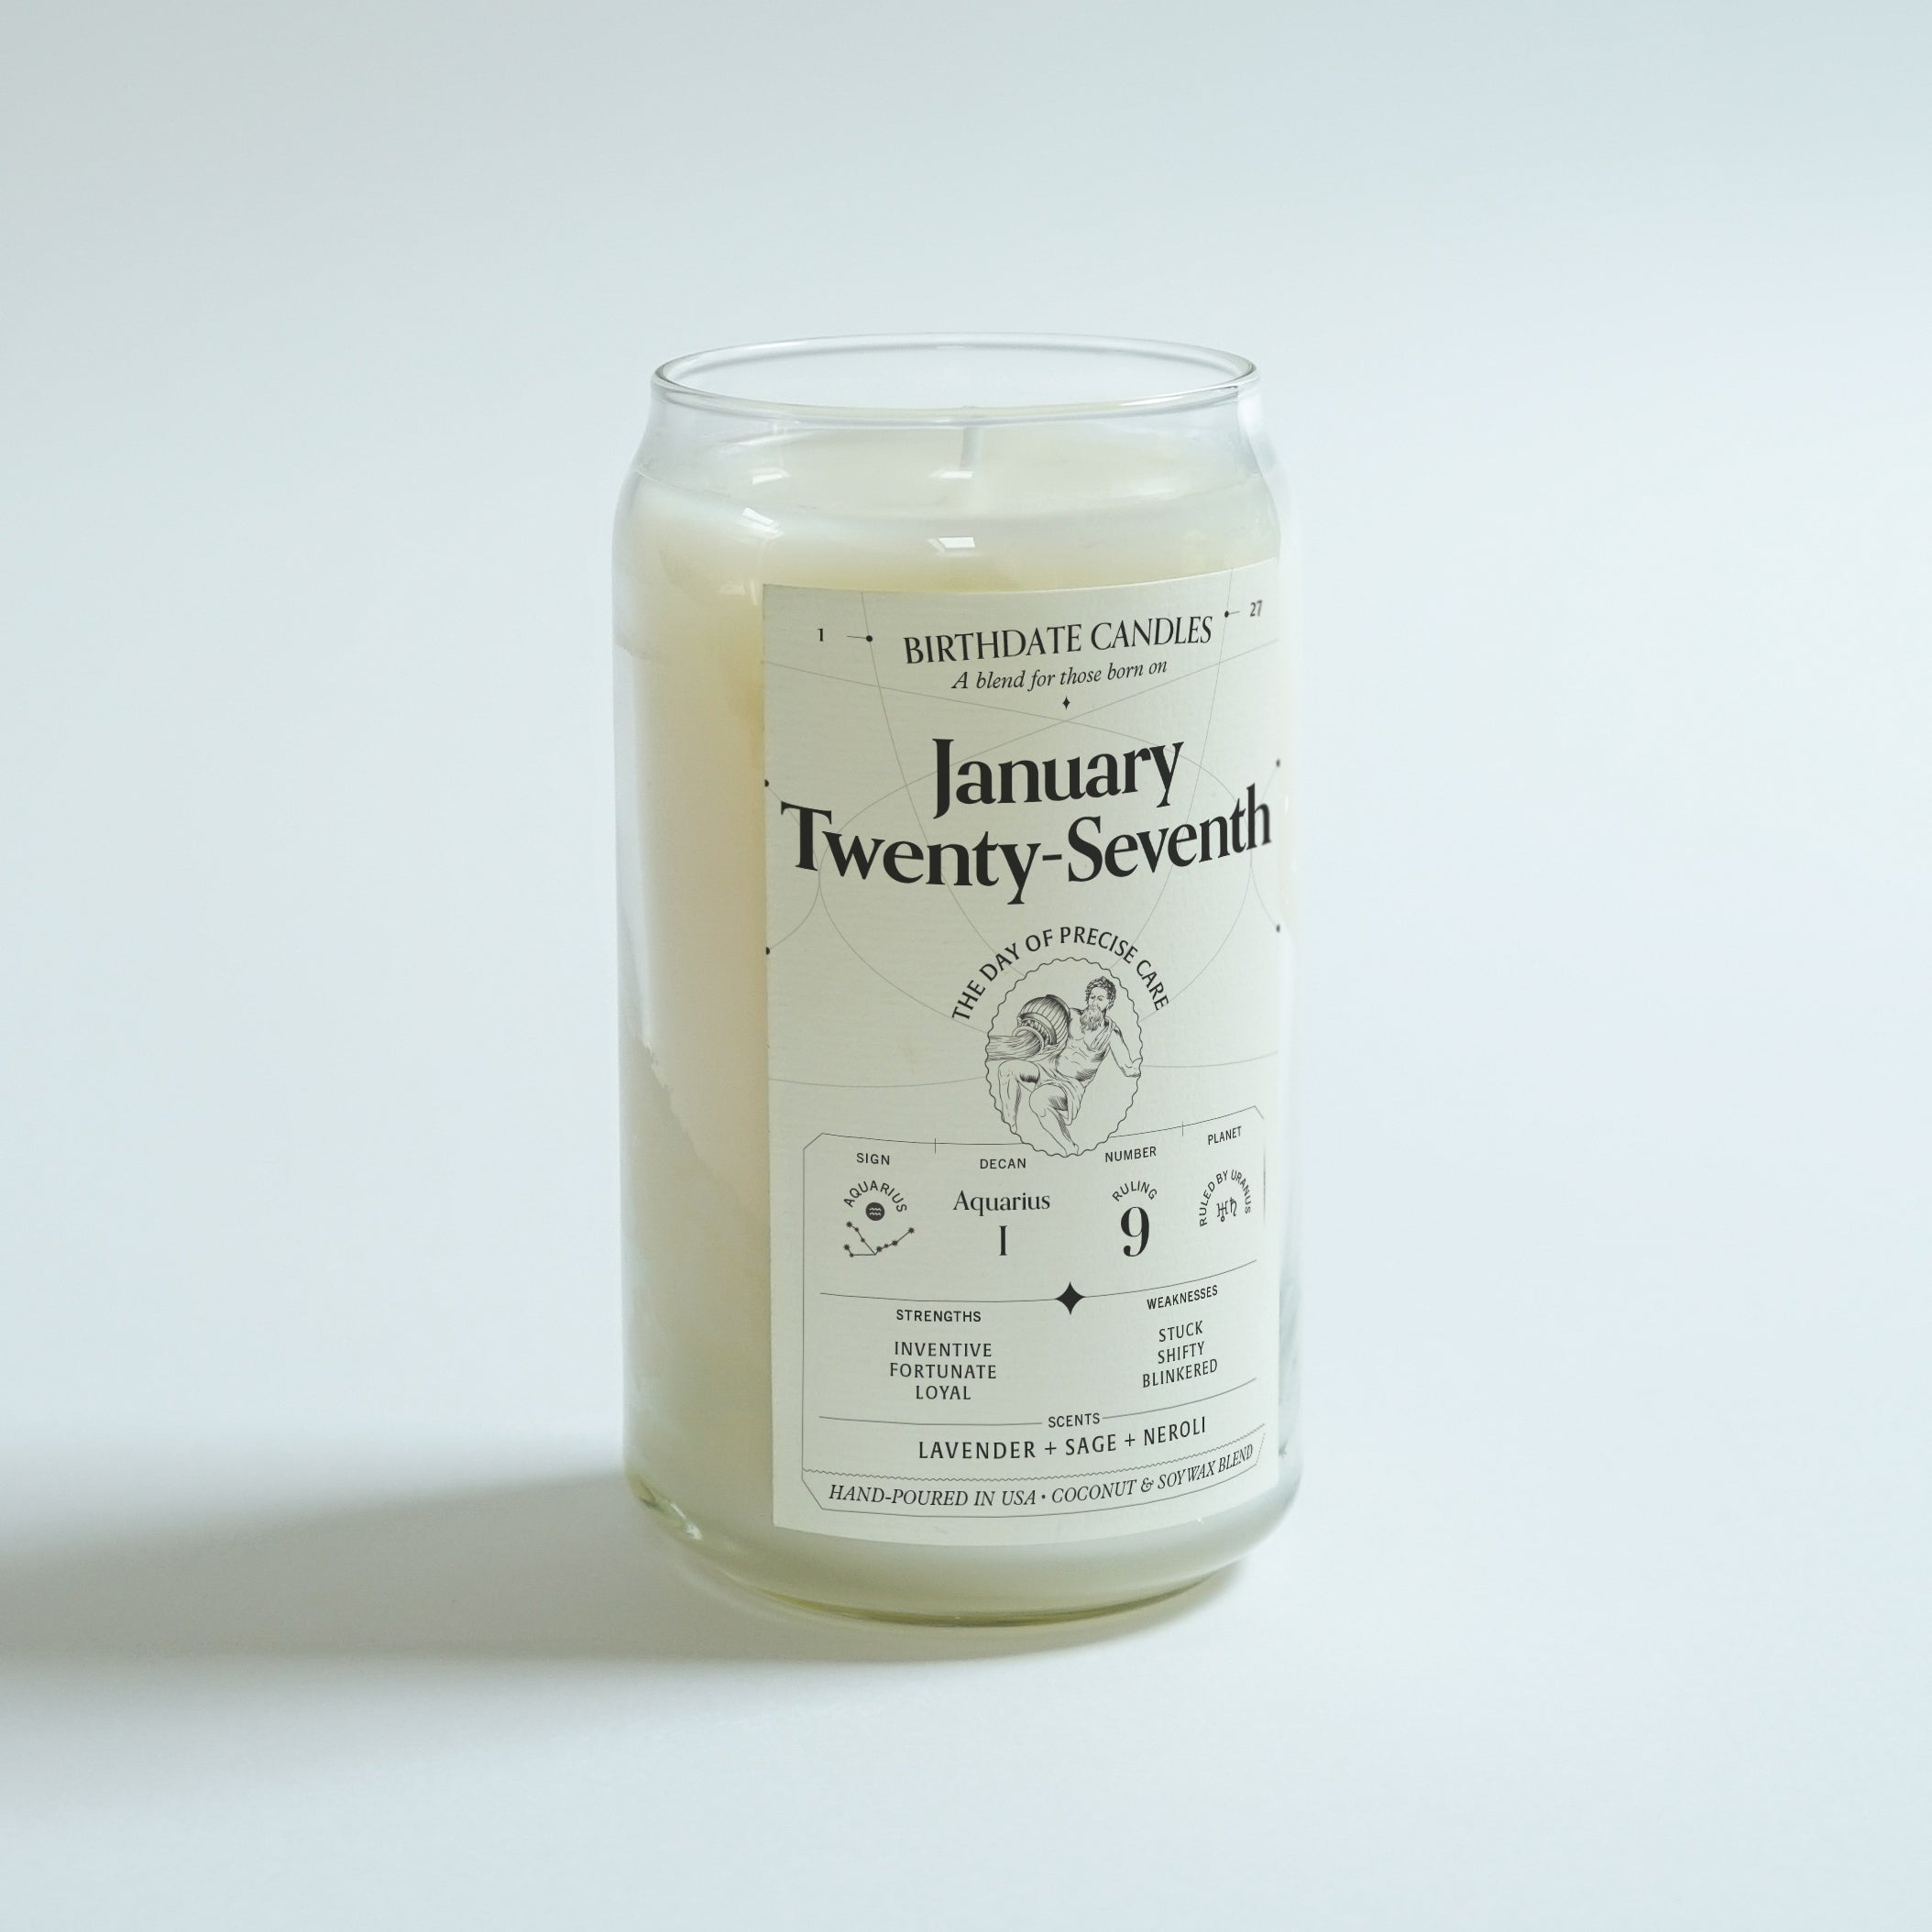 The January Twenty-Seventh Candle